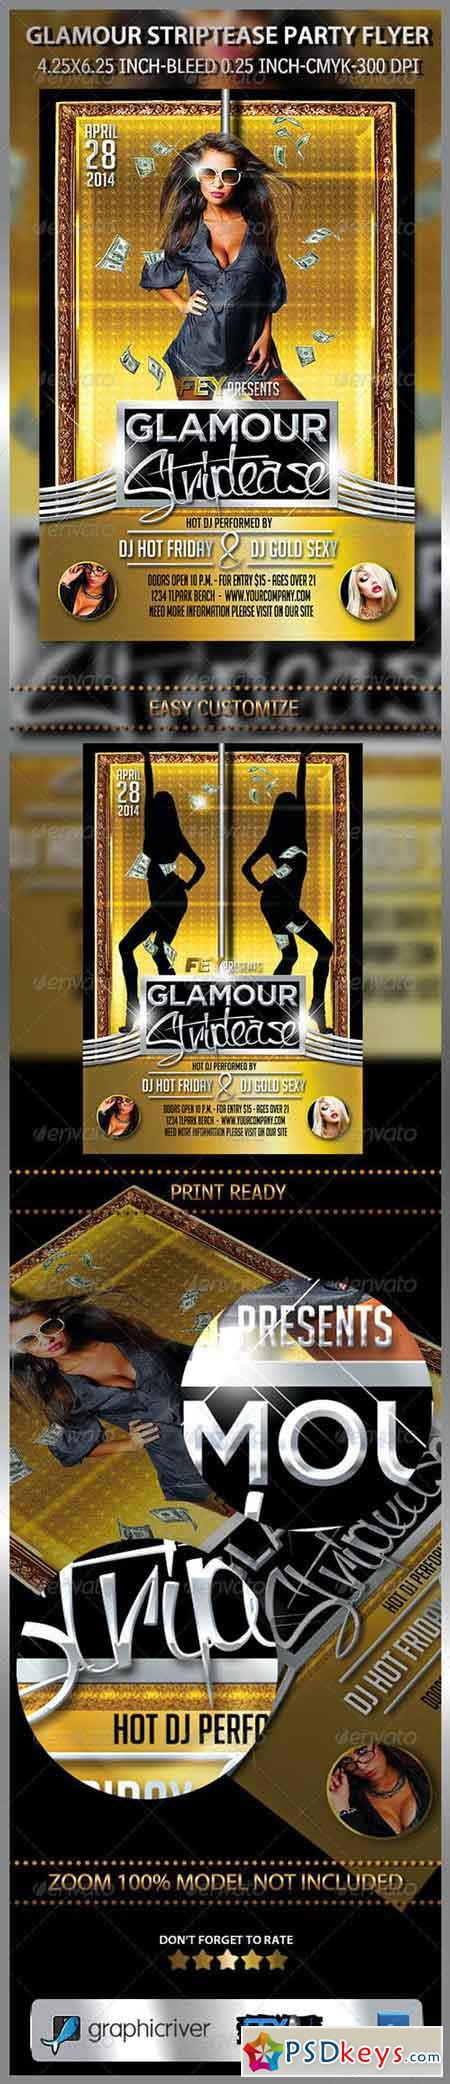 Glamour Striptease Party Flyer 7533550